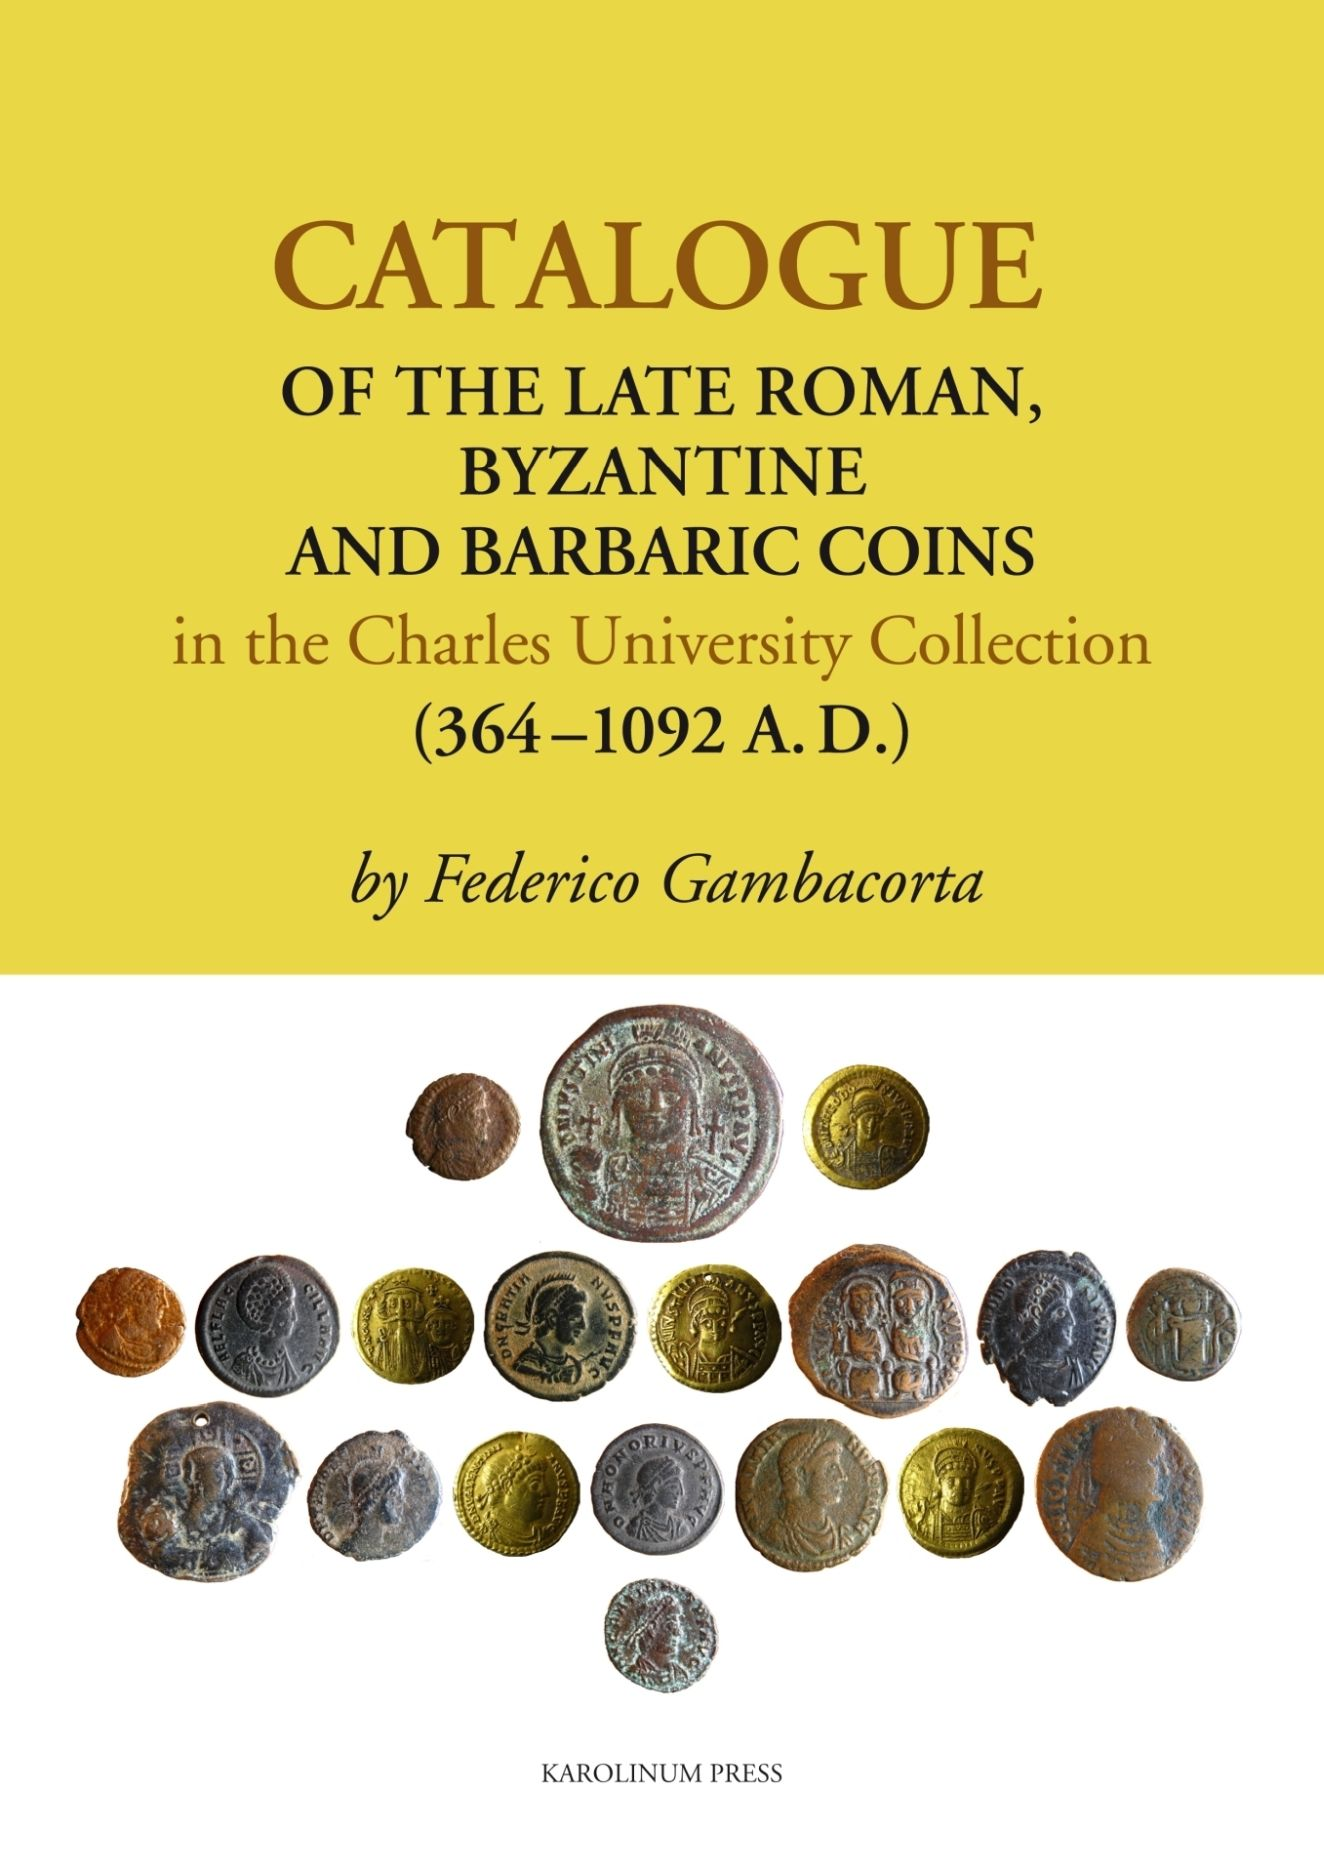 Catalogue of the Late Roman, Byzantine and Barbaric Coins in the Charles University Collection (364-1092 A. D.)